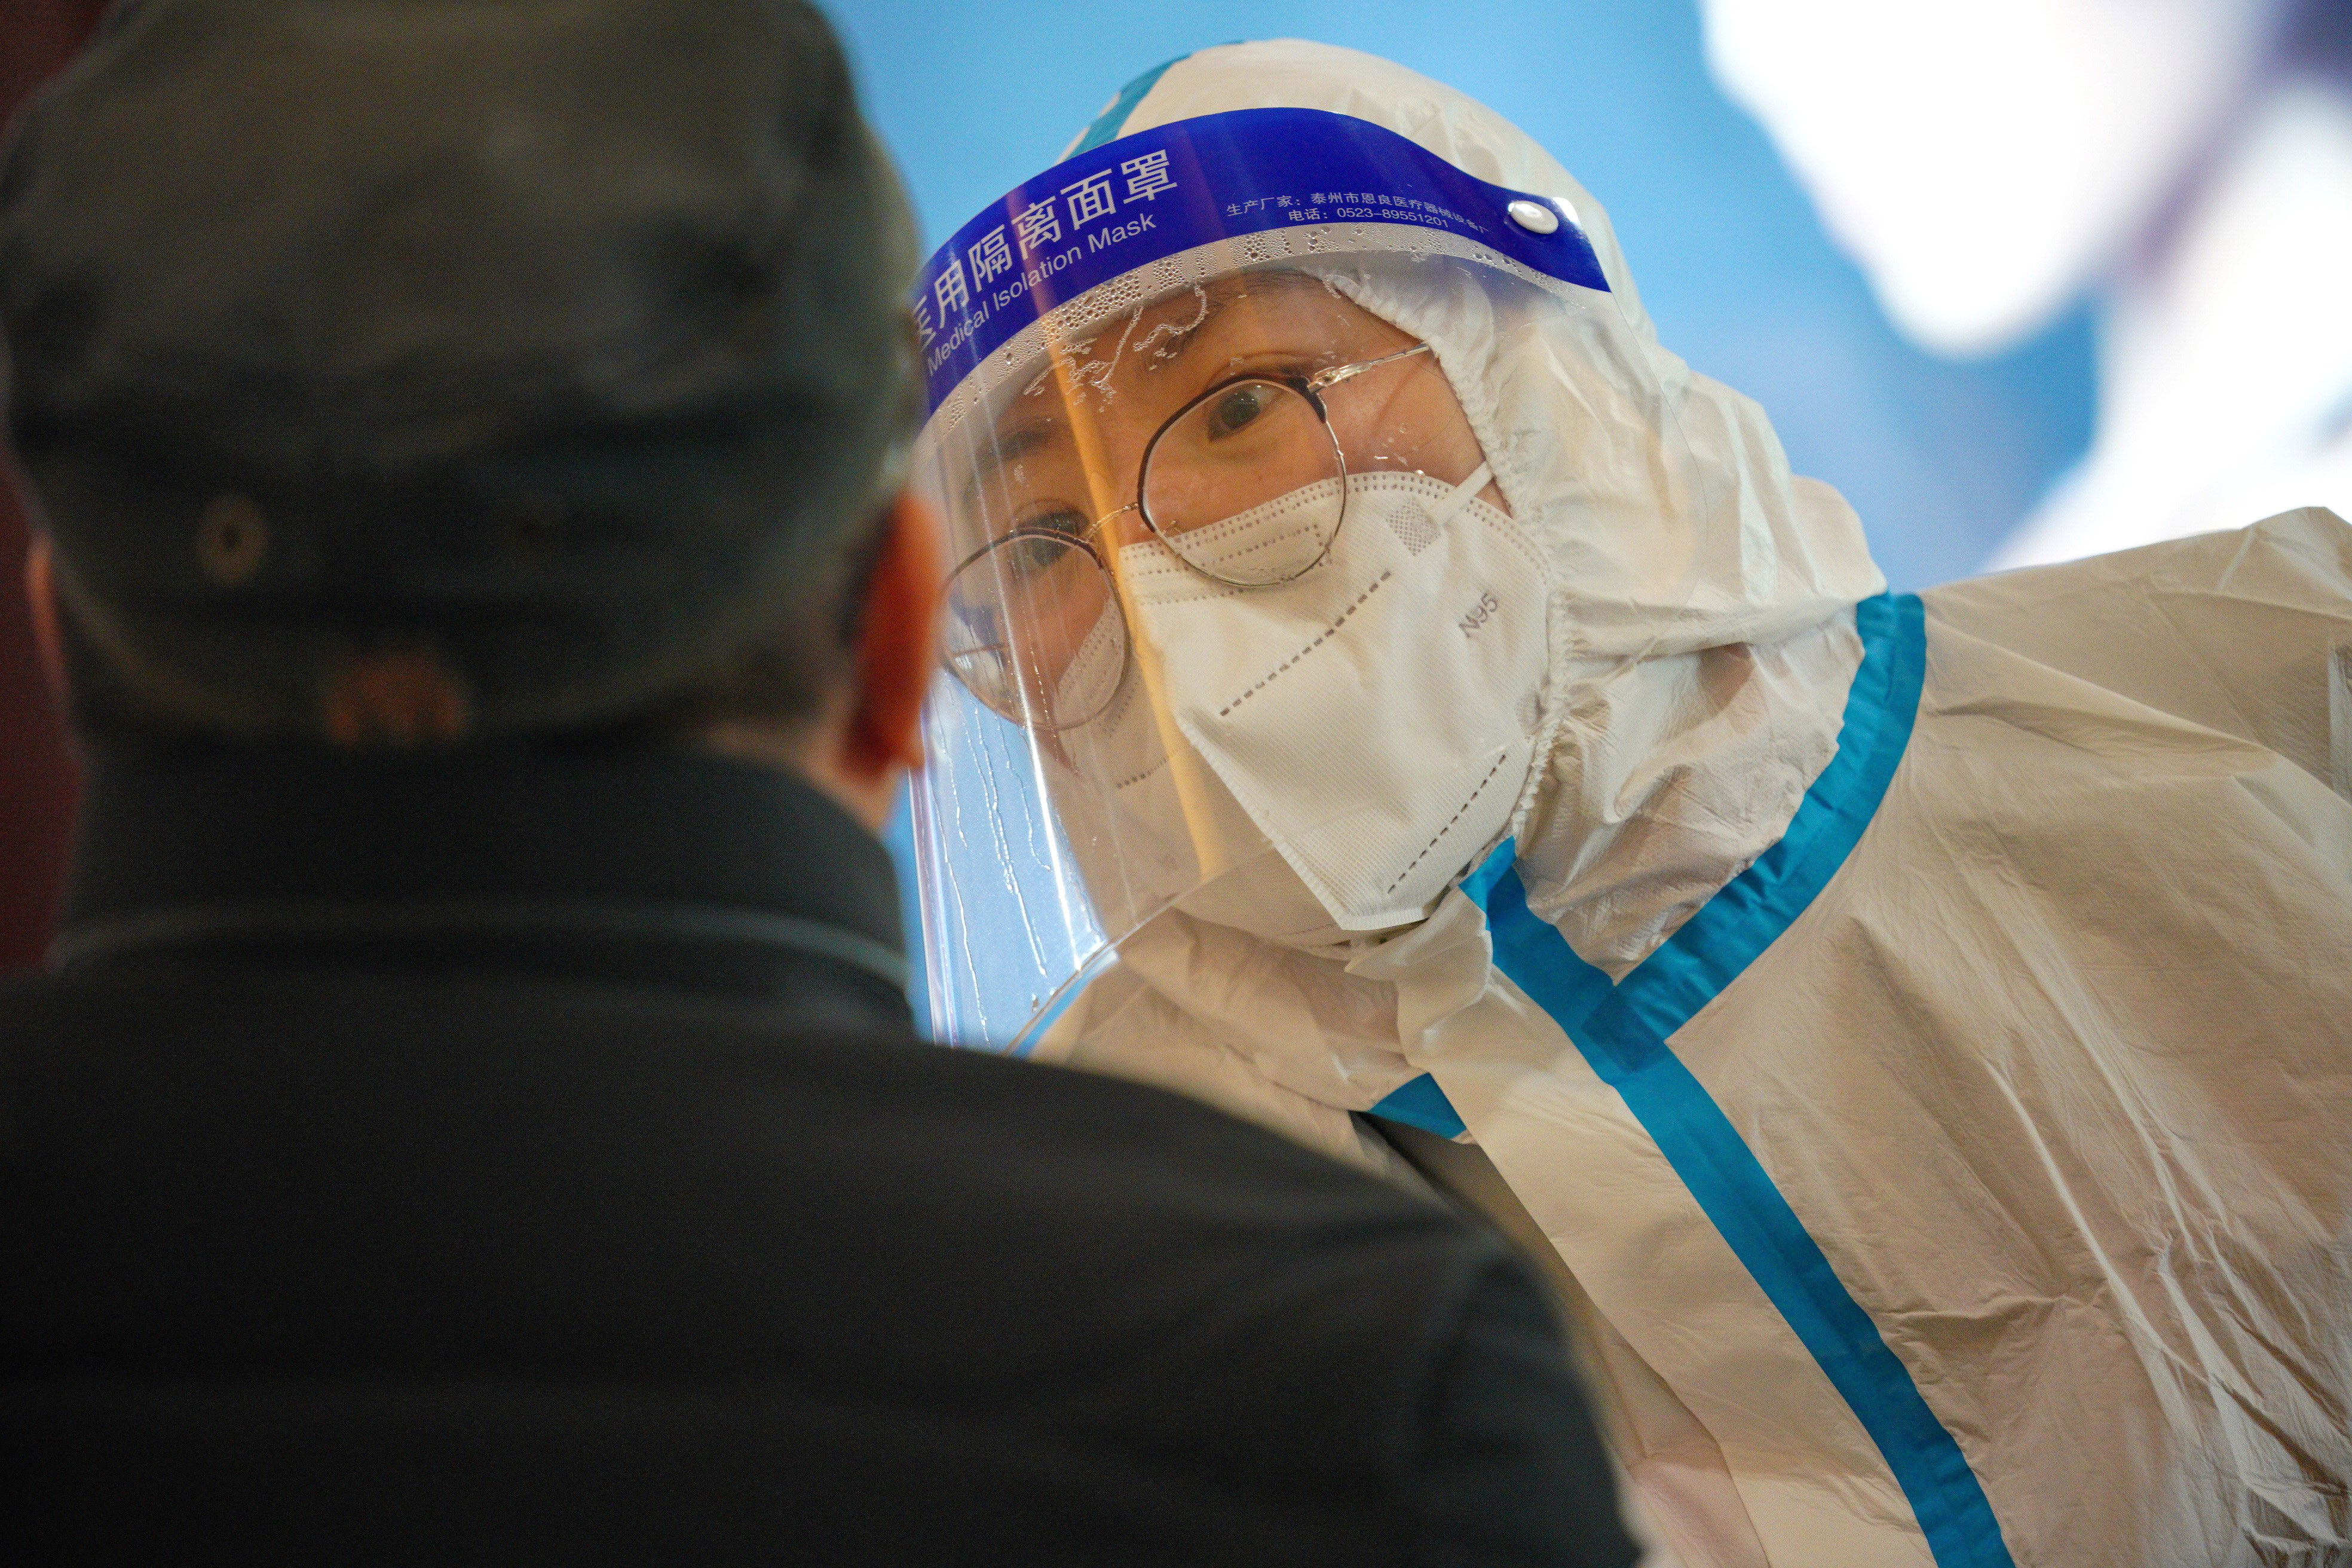 A medical worker collects a swab sample from a person at a Covid-19 testing site in the Qiaoxi District of Shijiazhuang, China, on January 20.